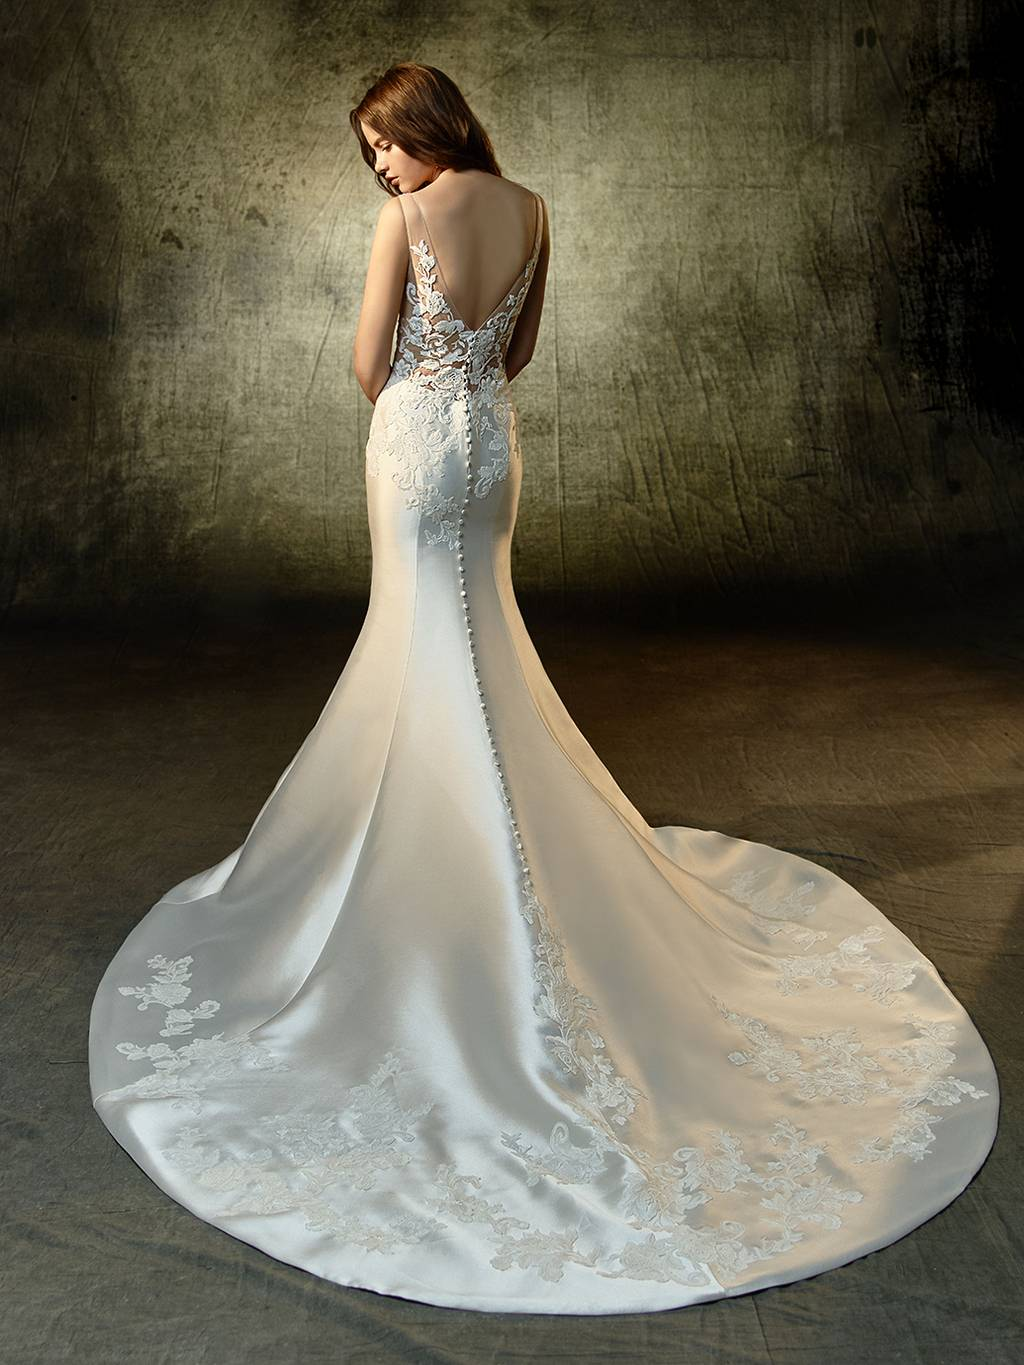 Where To Hire Wedding Dresses In Port Elizabeth